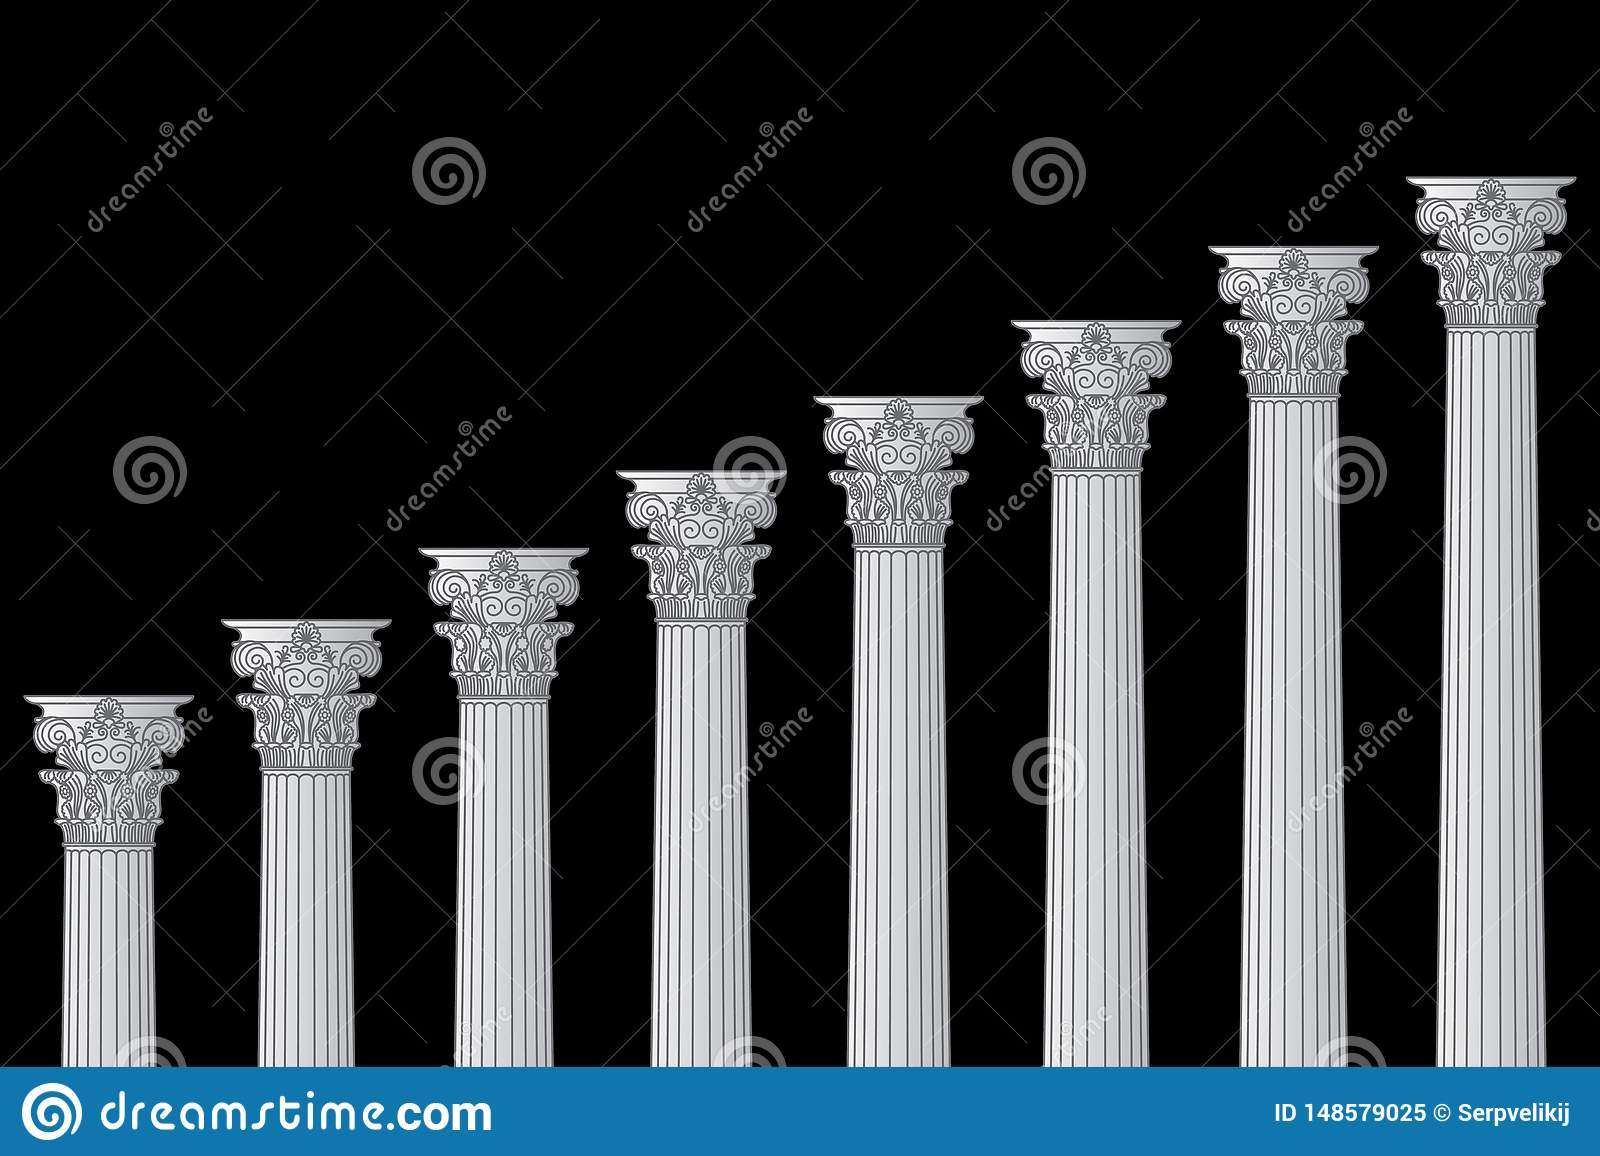 A series of Greek, antique, historic colonnades with Corinthian capitals and space for text on a black background